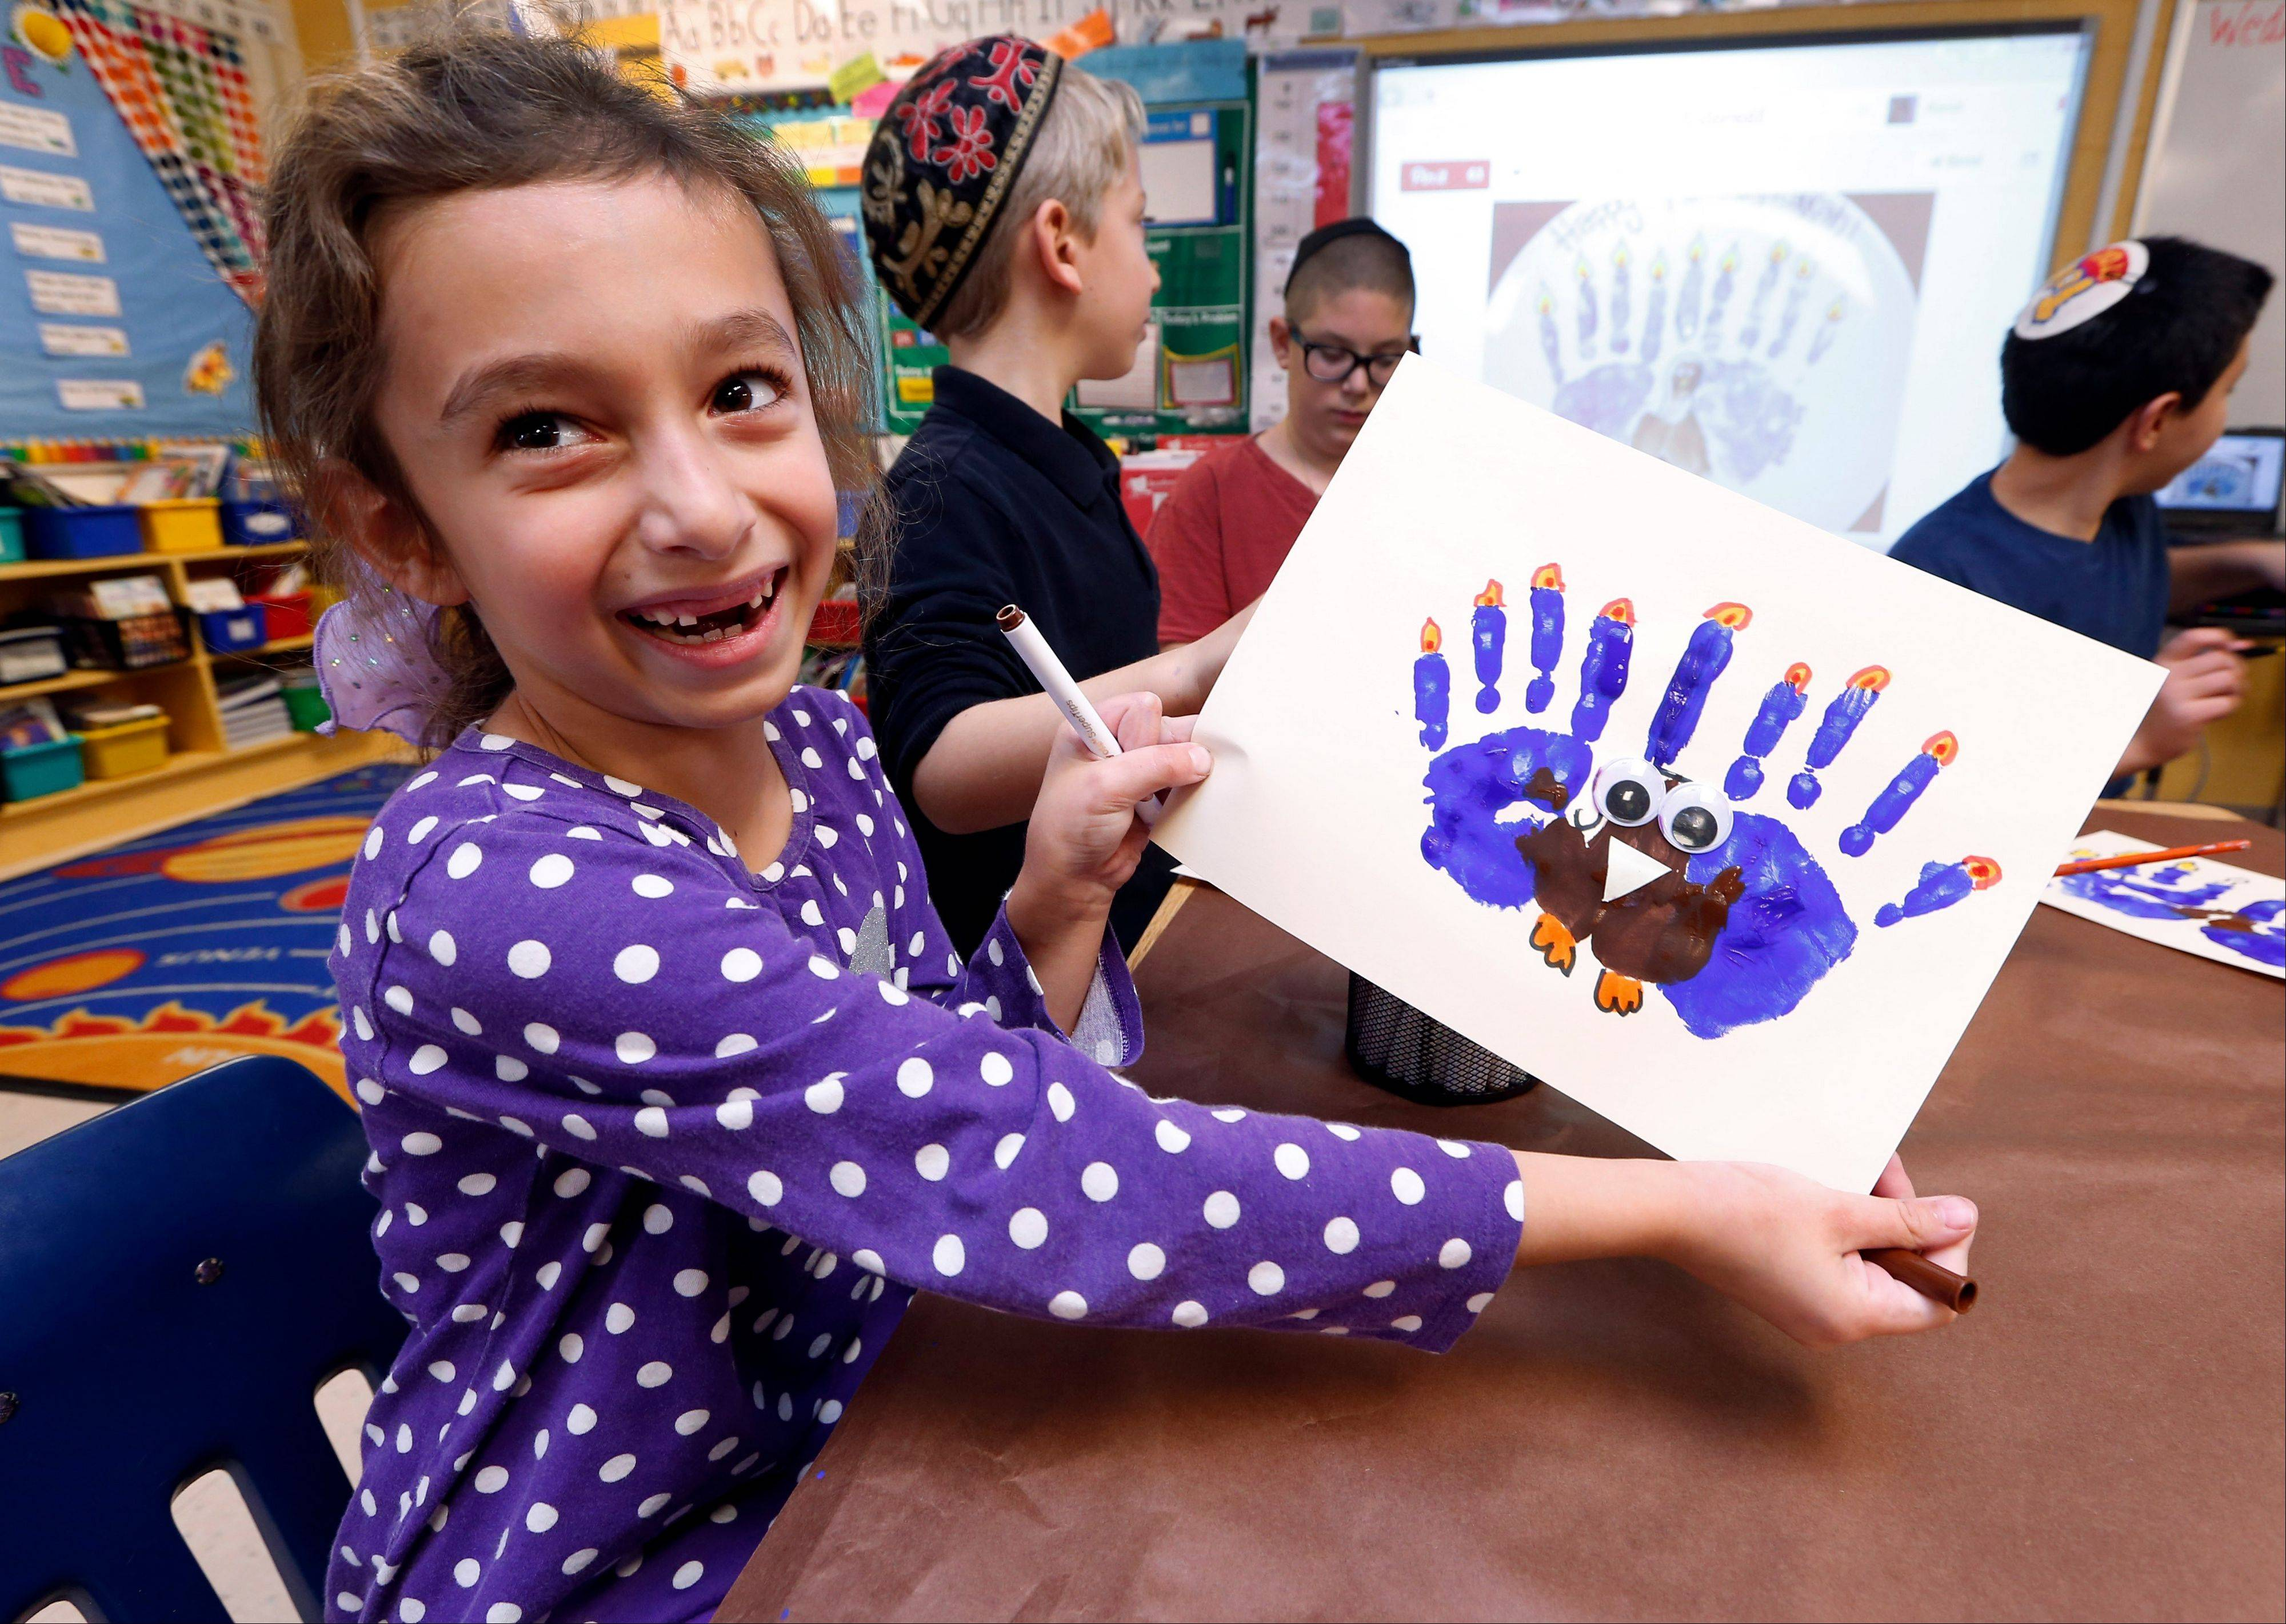 Second-grader Rozie Aronov, 7, holds up a menurkey, a paper-and-paint mashup of a menorah and turkey, she created at Hillel Day School in Farmington Hills, Mich. The recent class project reflects one way for Jews in the United States to deal with a rare quirk of the calendar that overlaps Thanksgiving with the start of Hanukkah. The last time it happened was 1888 and the next time is 79,043 years from now -- by one estimate that �s widely repeated in Jewish circles.